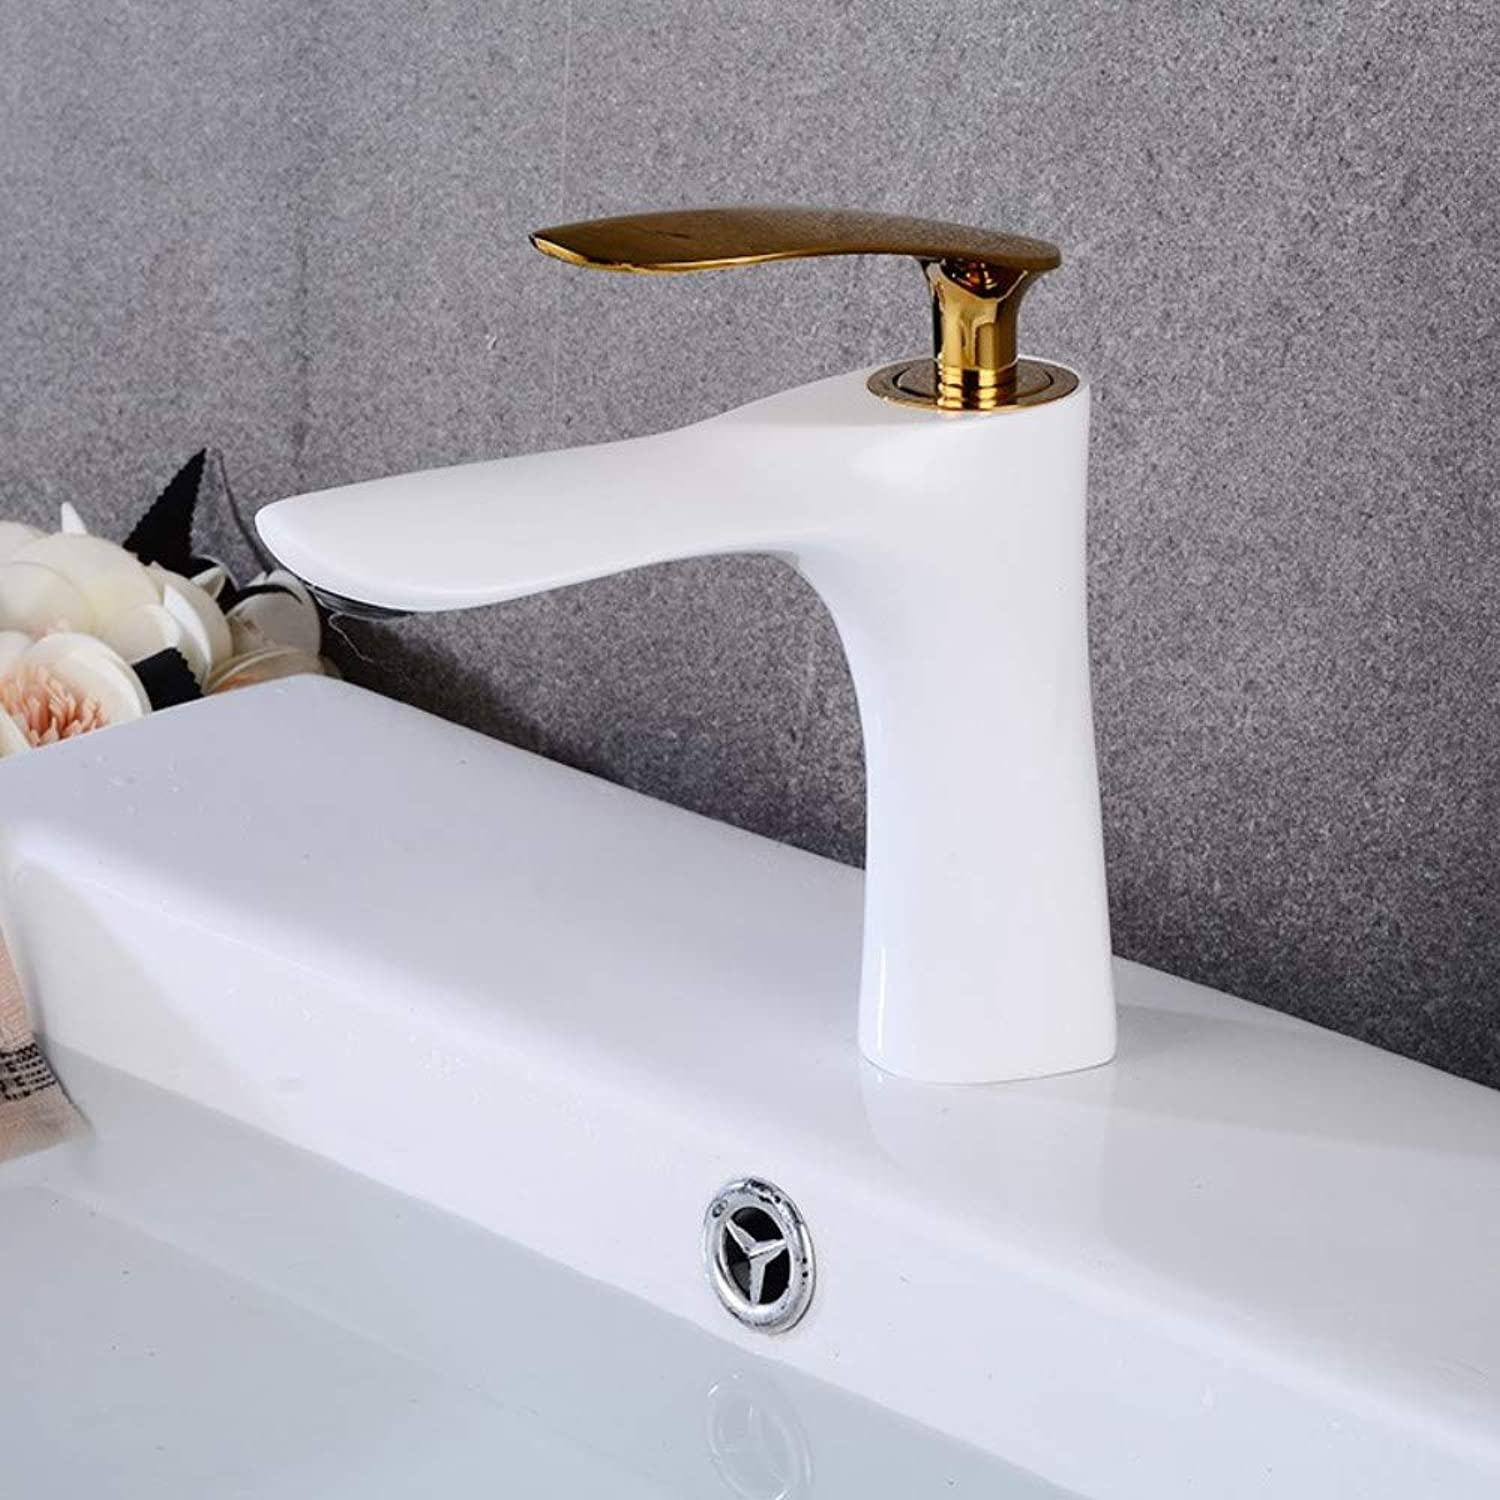 Bathroom Sink Tap White with gold Basin Faucets Bathroom Faucet Single Handle Basin Mixer Tap Hot and Cold Water Tap Basin Faucet